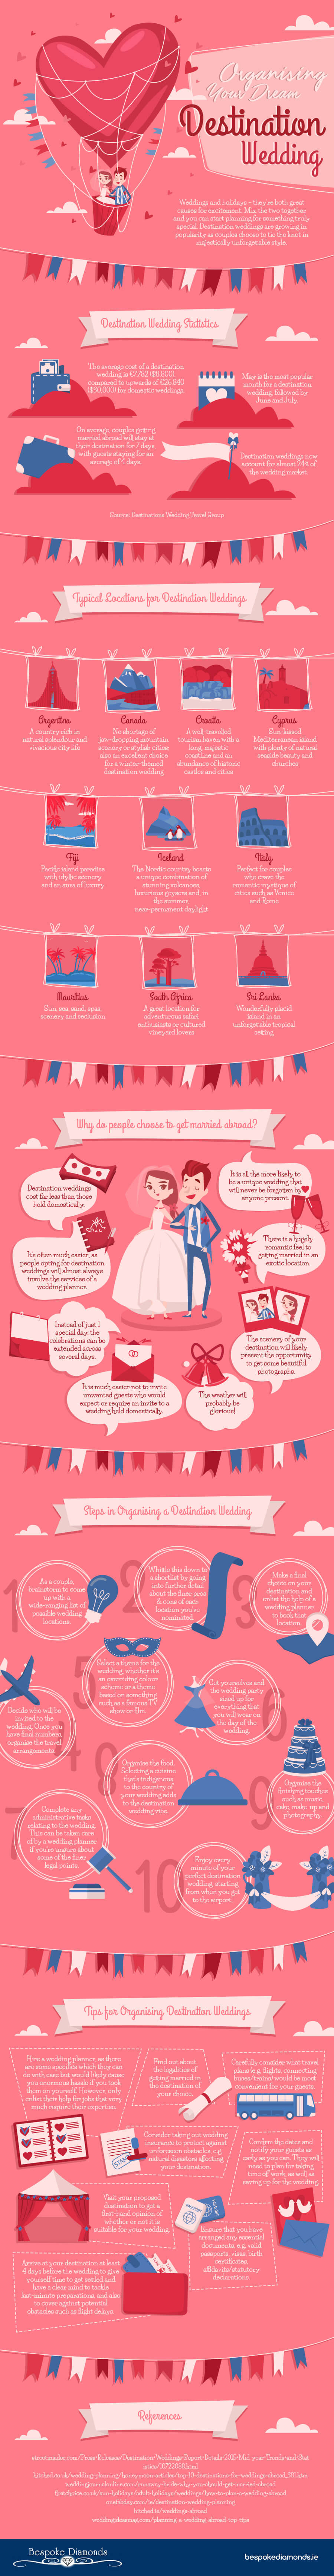 dream-destination-wedding-infographic-bespoke-diamonds-infographic-plaza